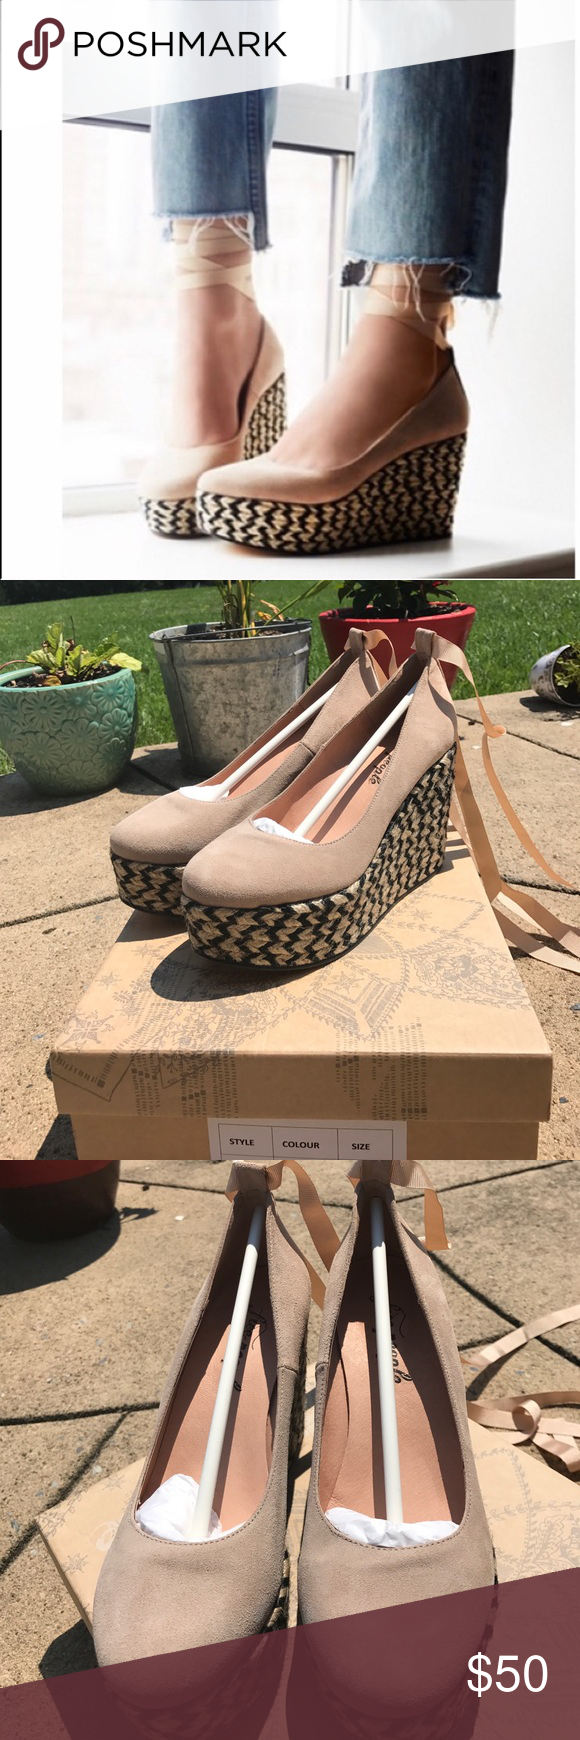 3ff0276265 FP NIB charade wedge Reposh- free people charade espadrille wedges new in  box. They